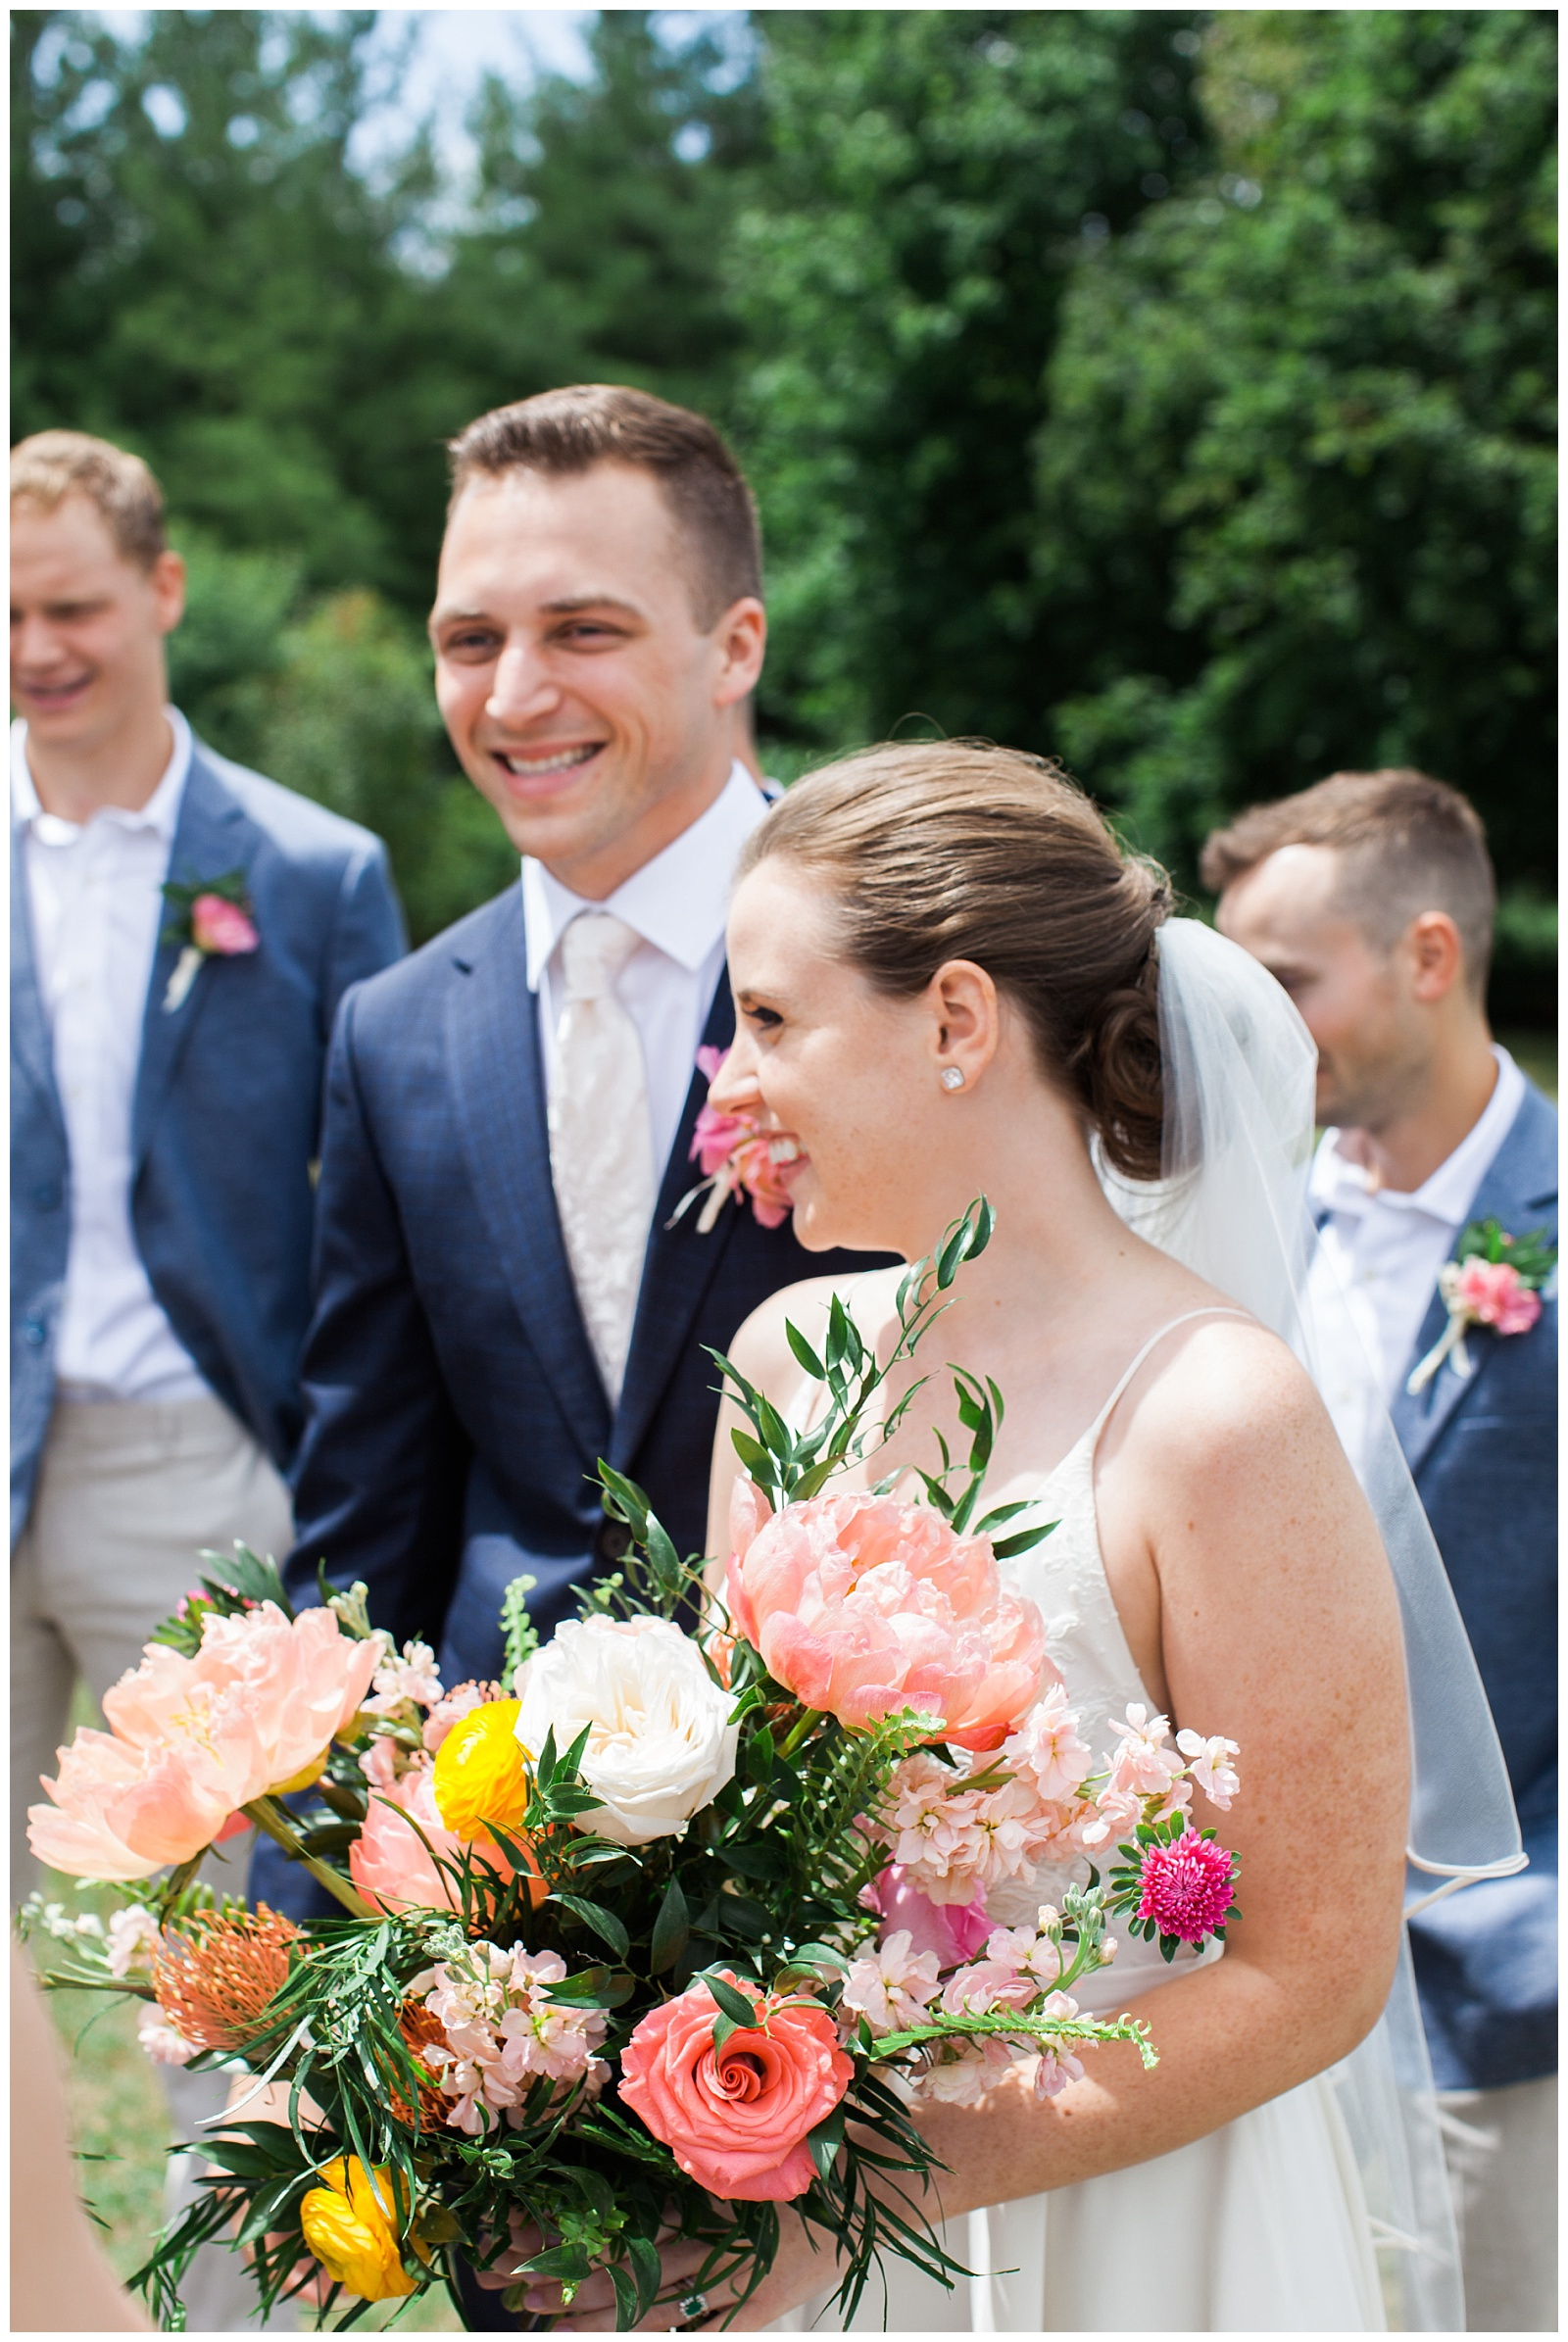 Bride and groom outside smiling after ceremony at Guelph Ontario Wedding | Ontario Wedding Photographer | Toronto Wedding Photographer | 3photography